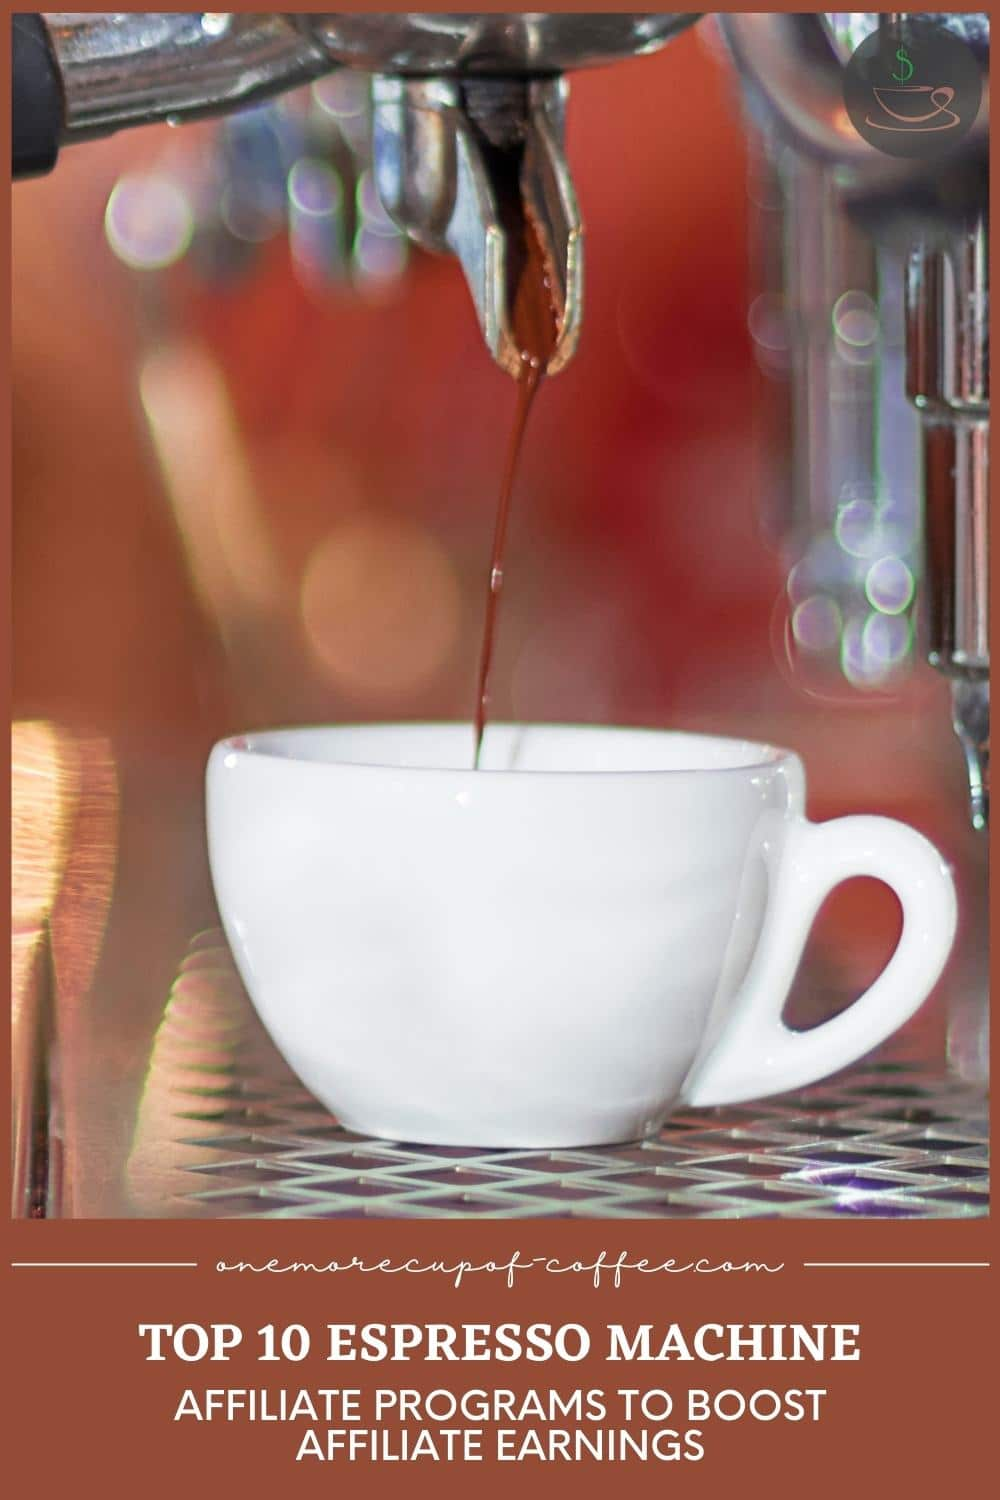 """closeup image of white cup with coffee dripping from an espresso machine, with text at the bottom in brown banner """"Top 10 Espresso Machine Affiliate Programs To Boost Affiliate Earnings"""""""